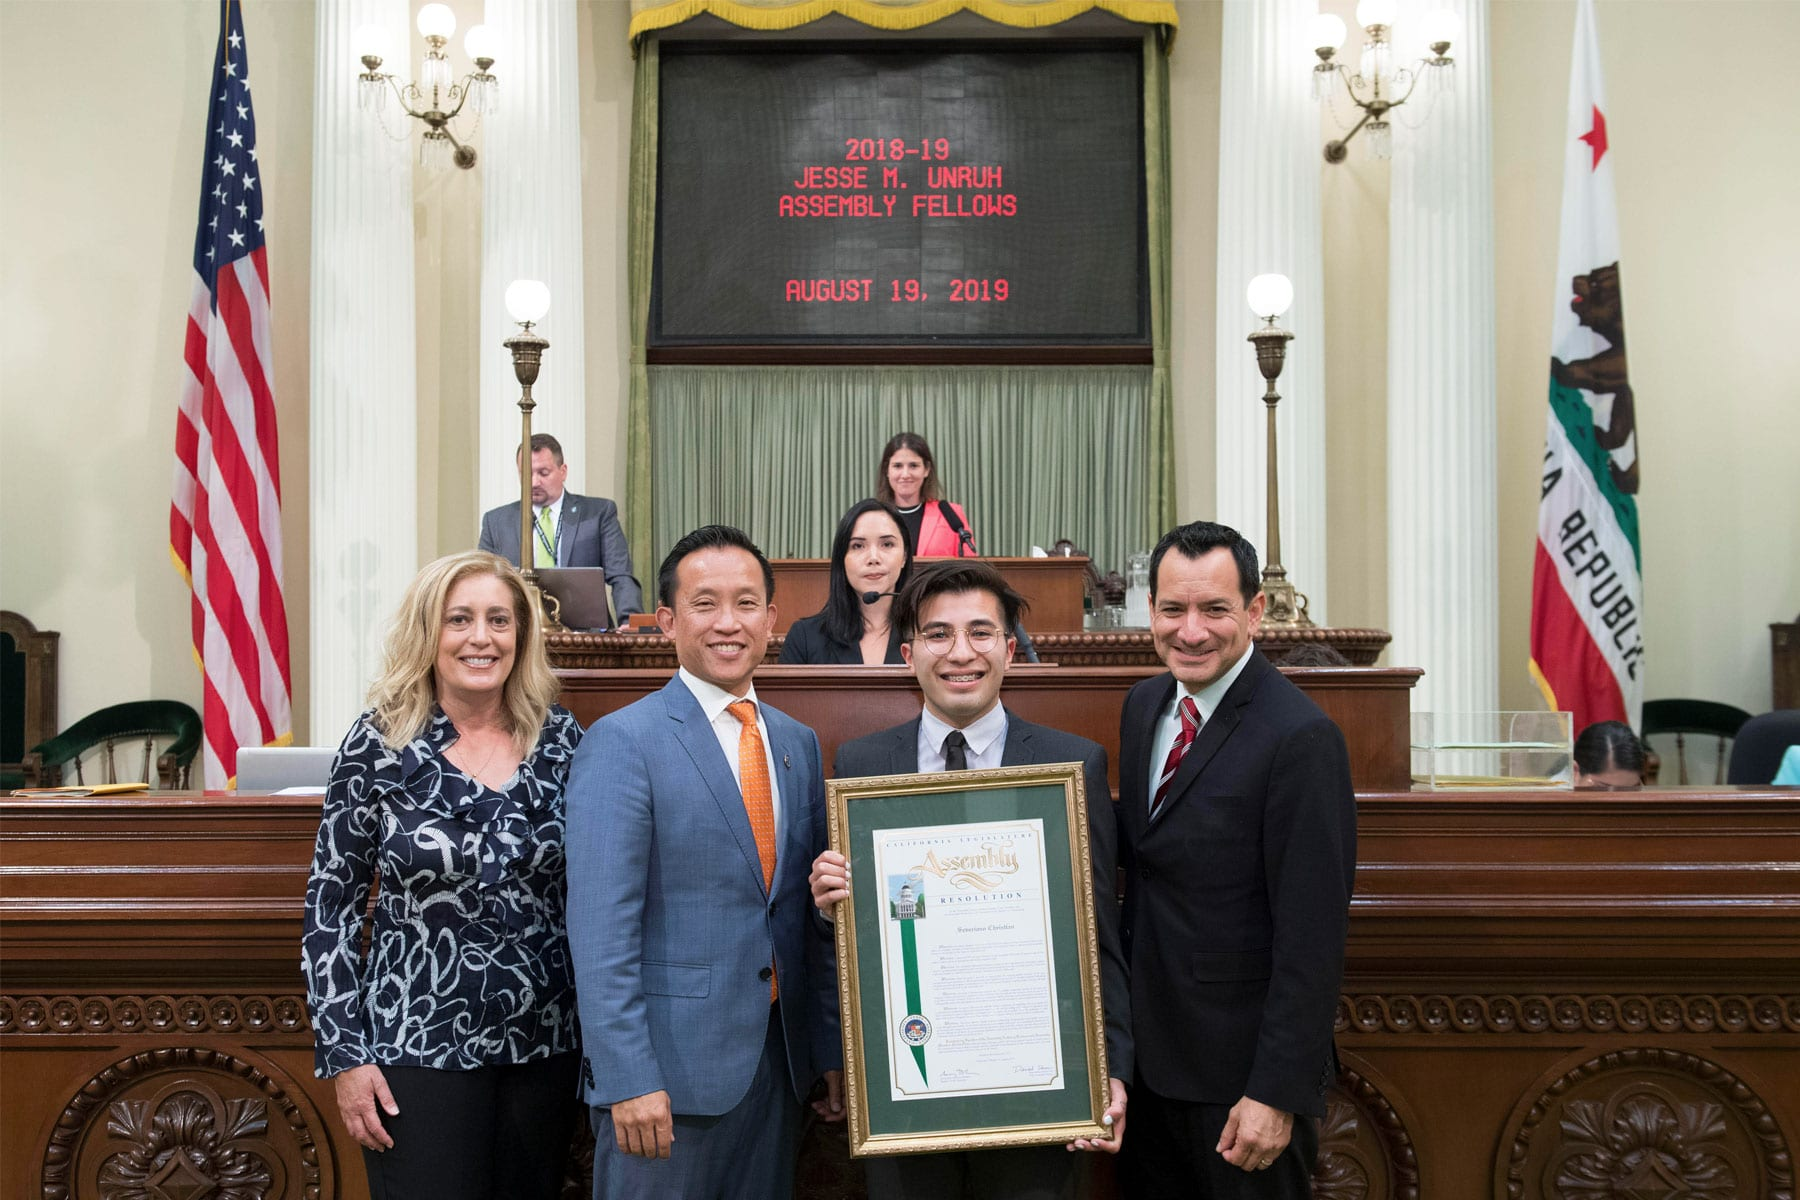 Severiano Christian standing in front of the chamber podium holding am assembly certificate with fellow assembly members.